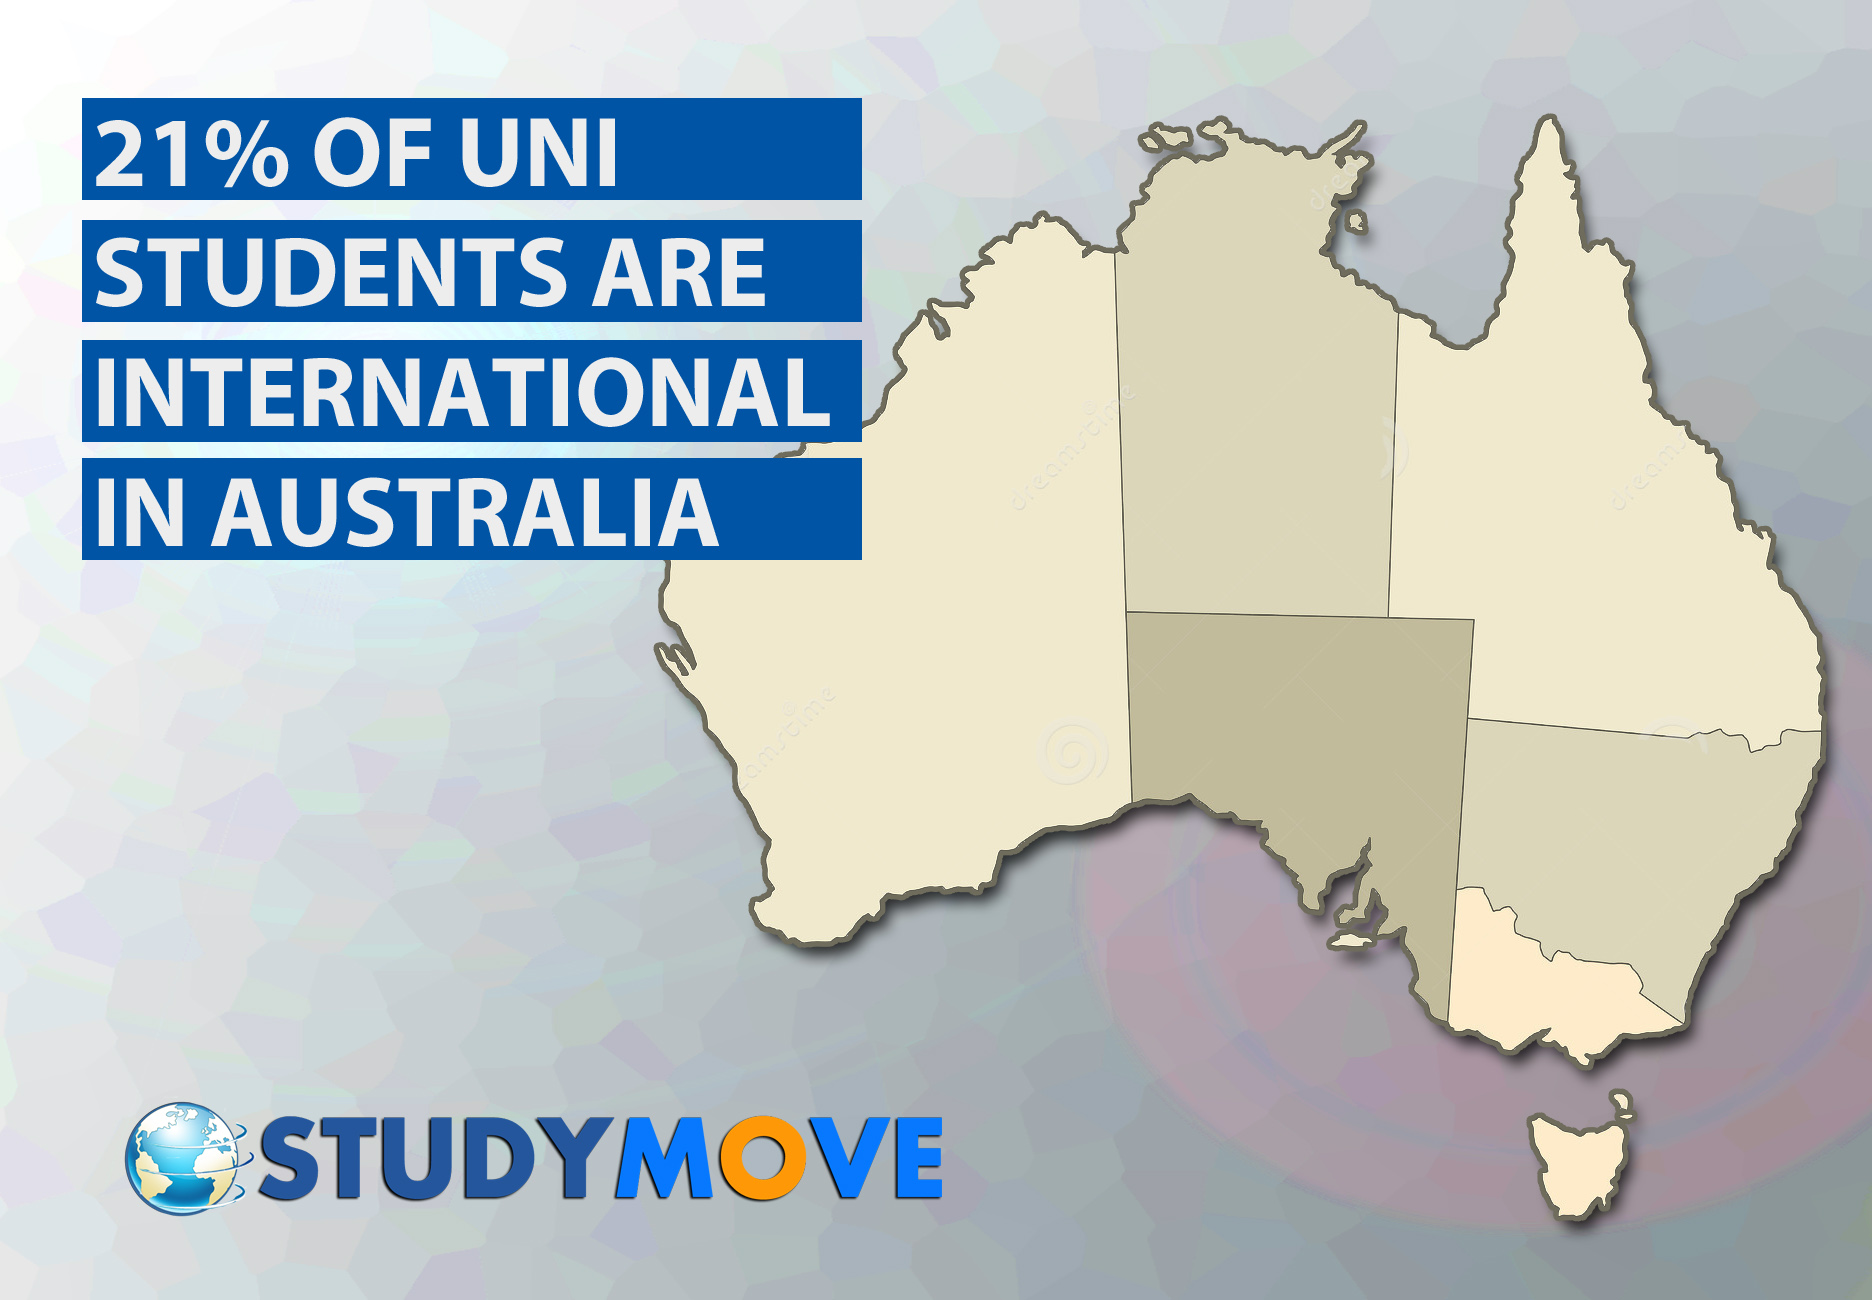 Map Of Australia For Students.What Is The Percentage Of International Students In Australia